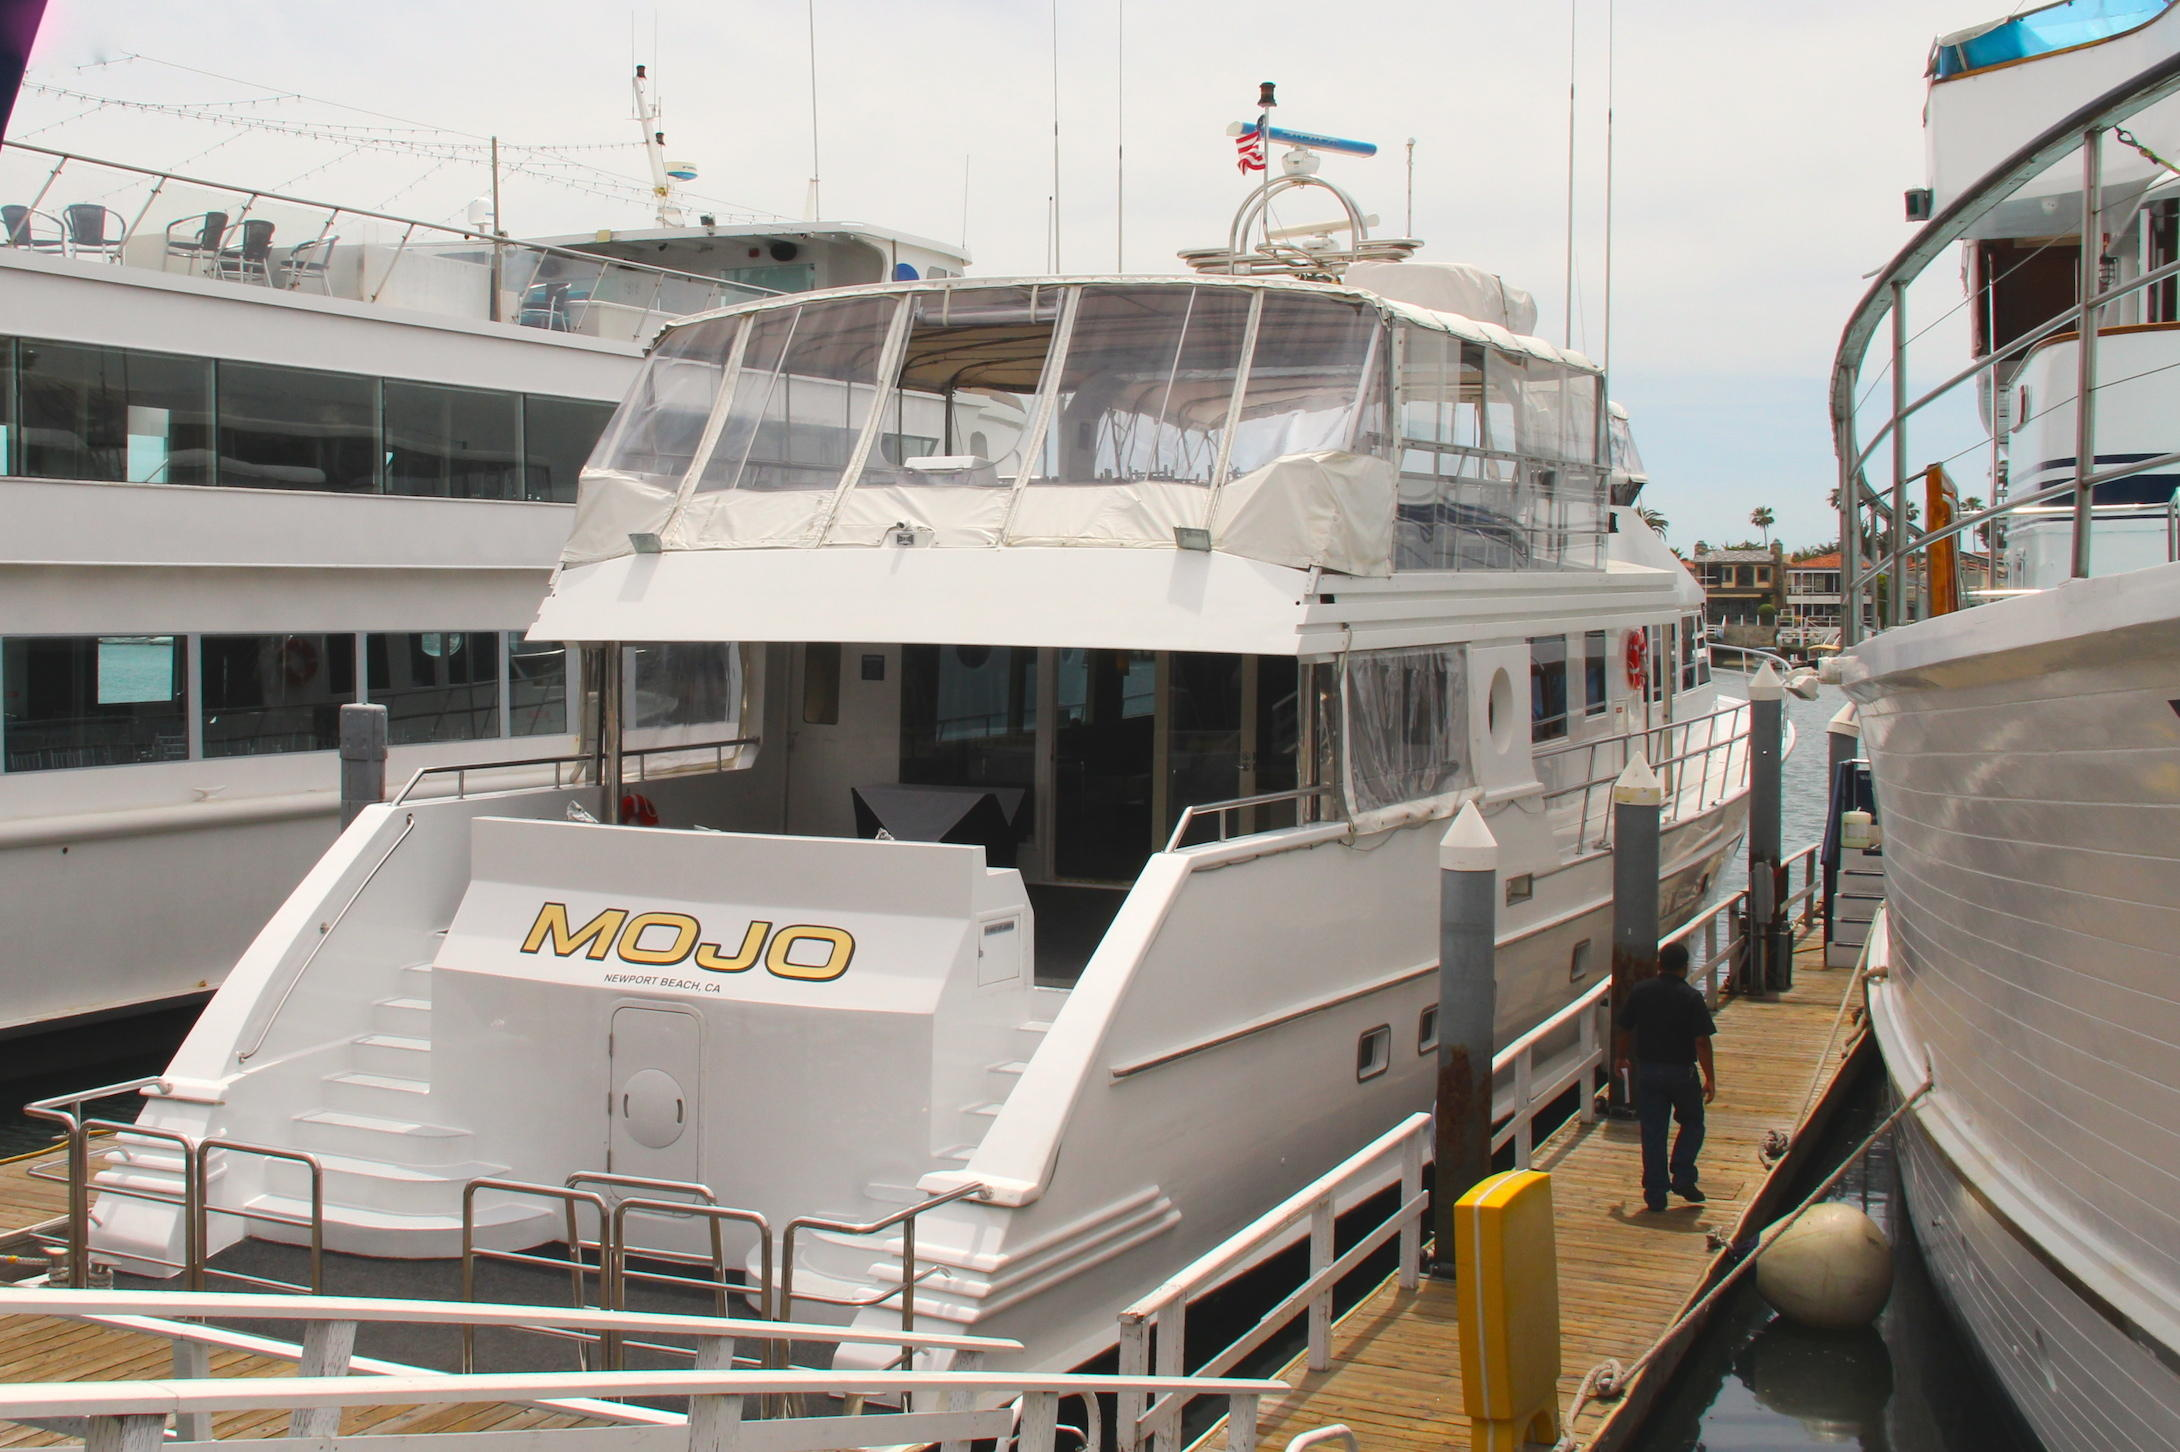 M V Mojo Berthed In Newport Beach Today Where It Serves As A Luxury Yacht Operated By Horner Cruises